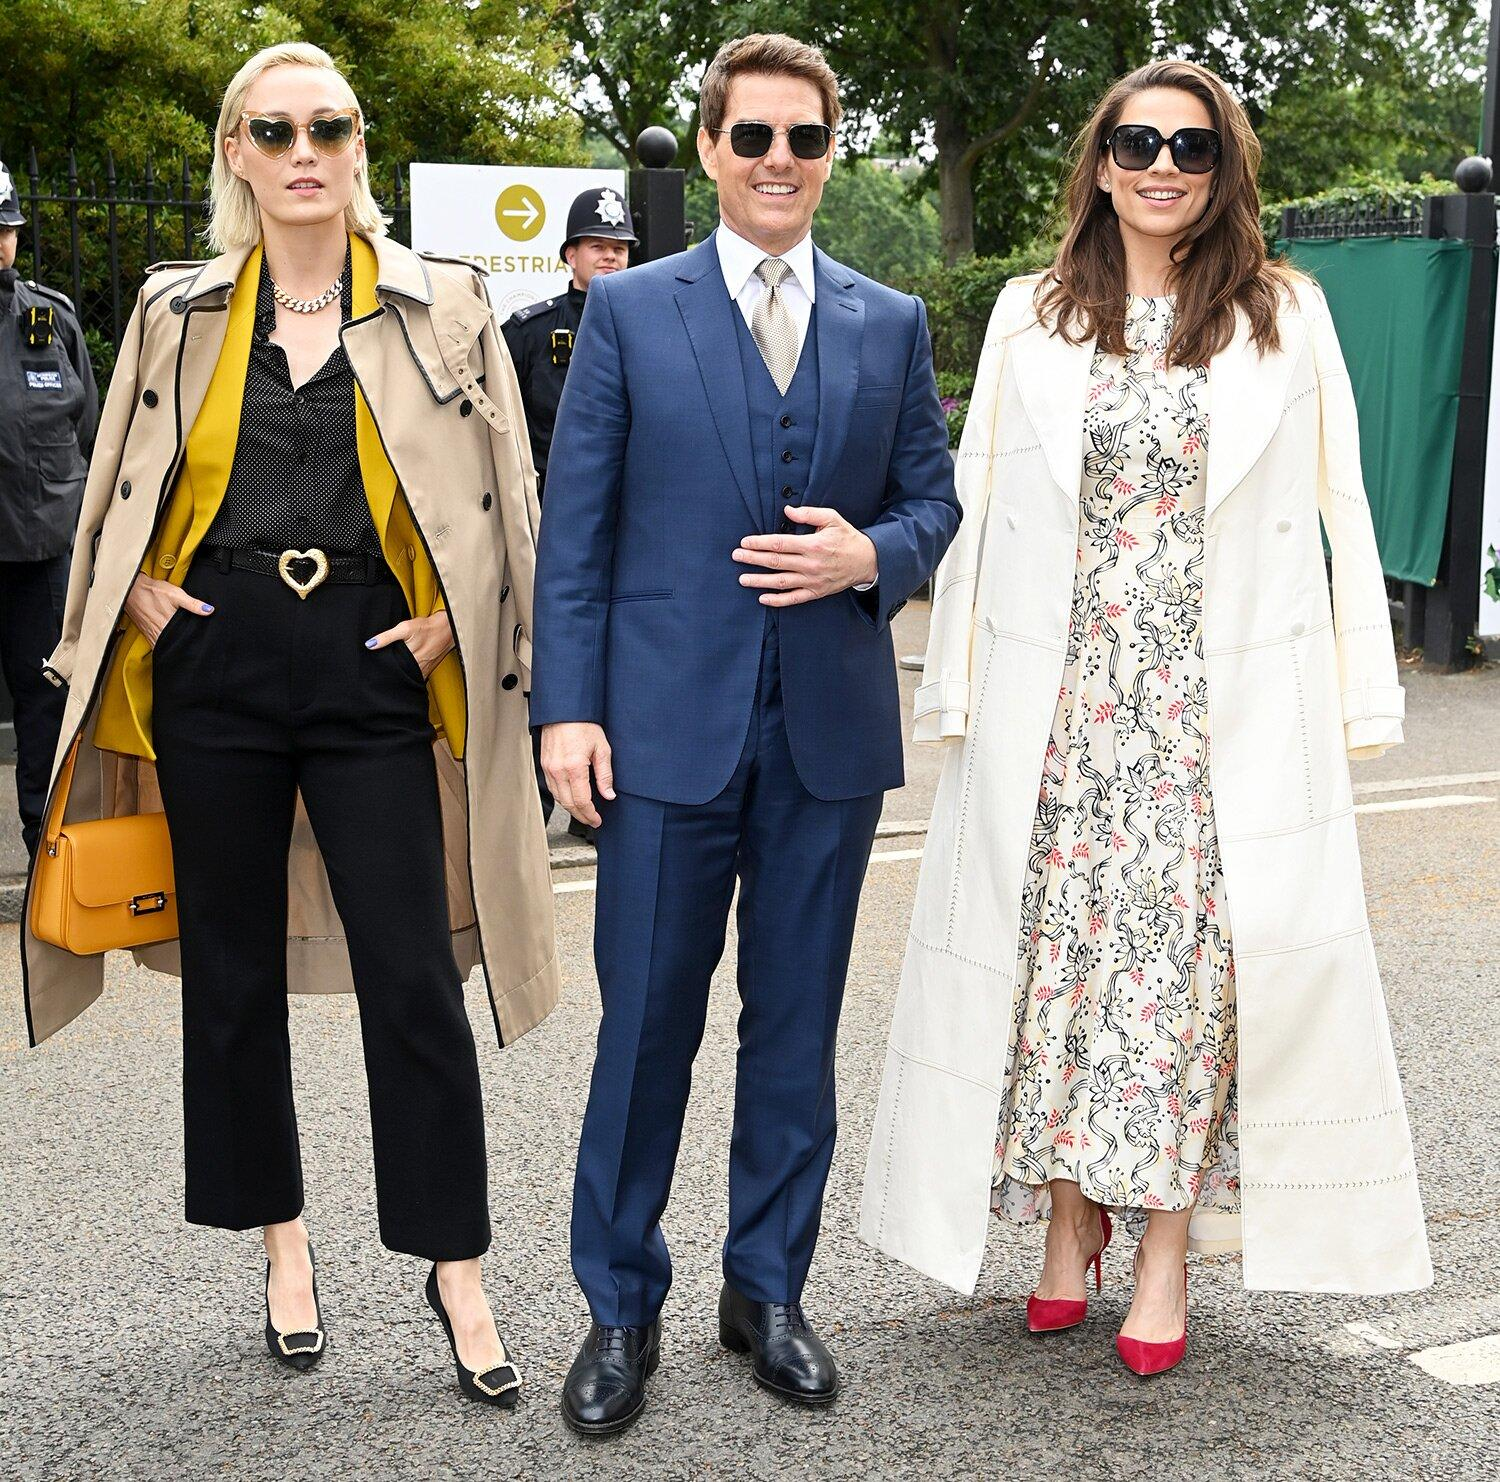 Tom Cruise Attends Wimbledon Finals with Mission: Impossible Costars Hayley Atwell and Pom Klementieff